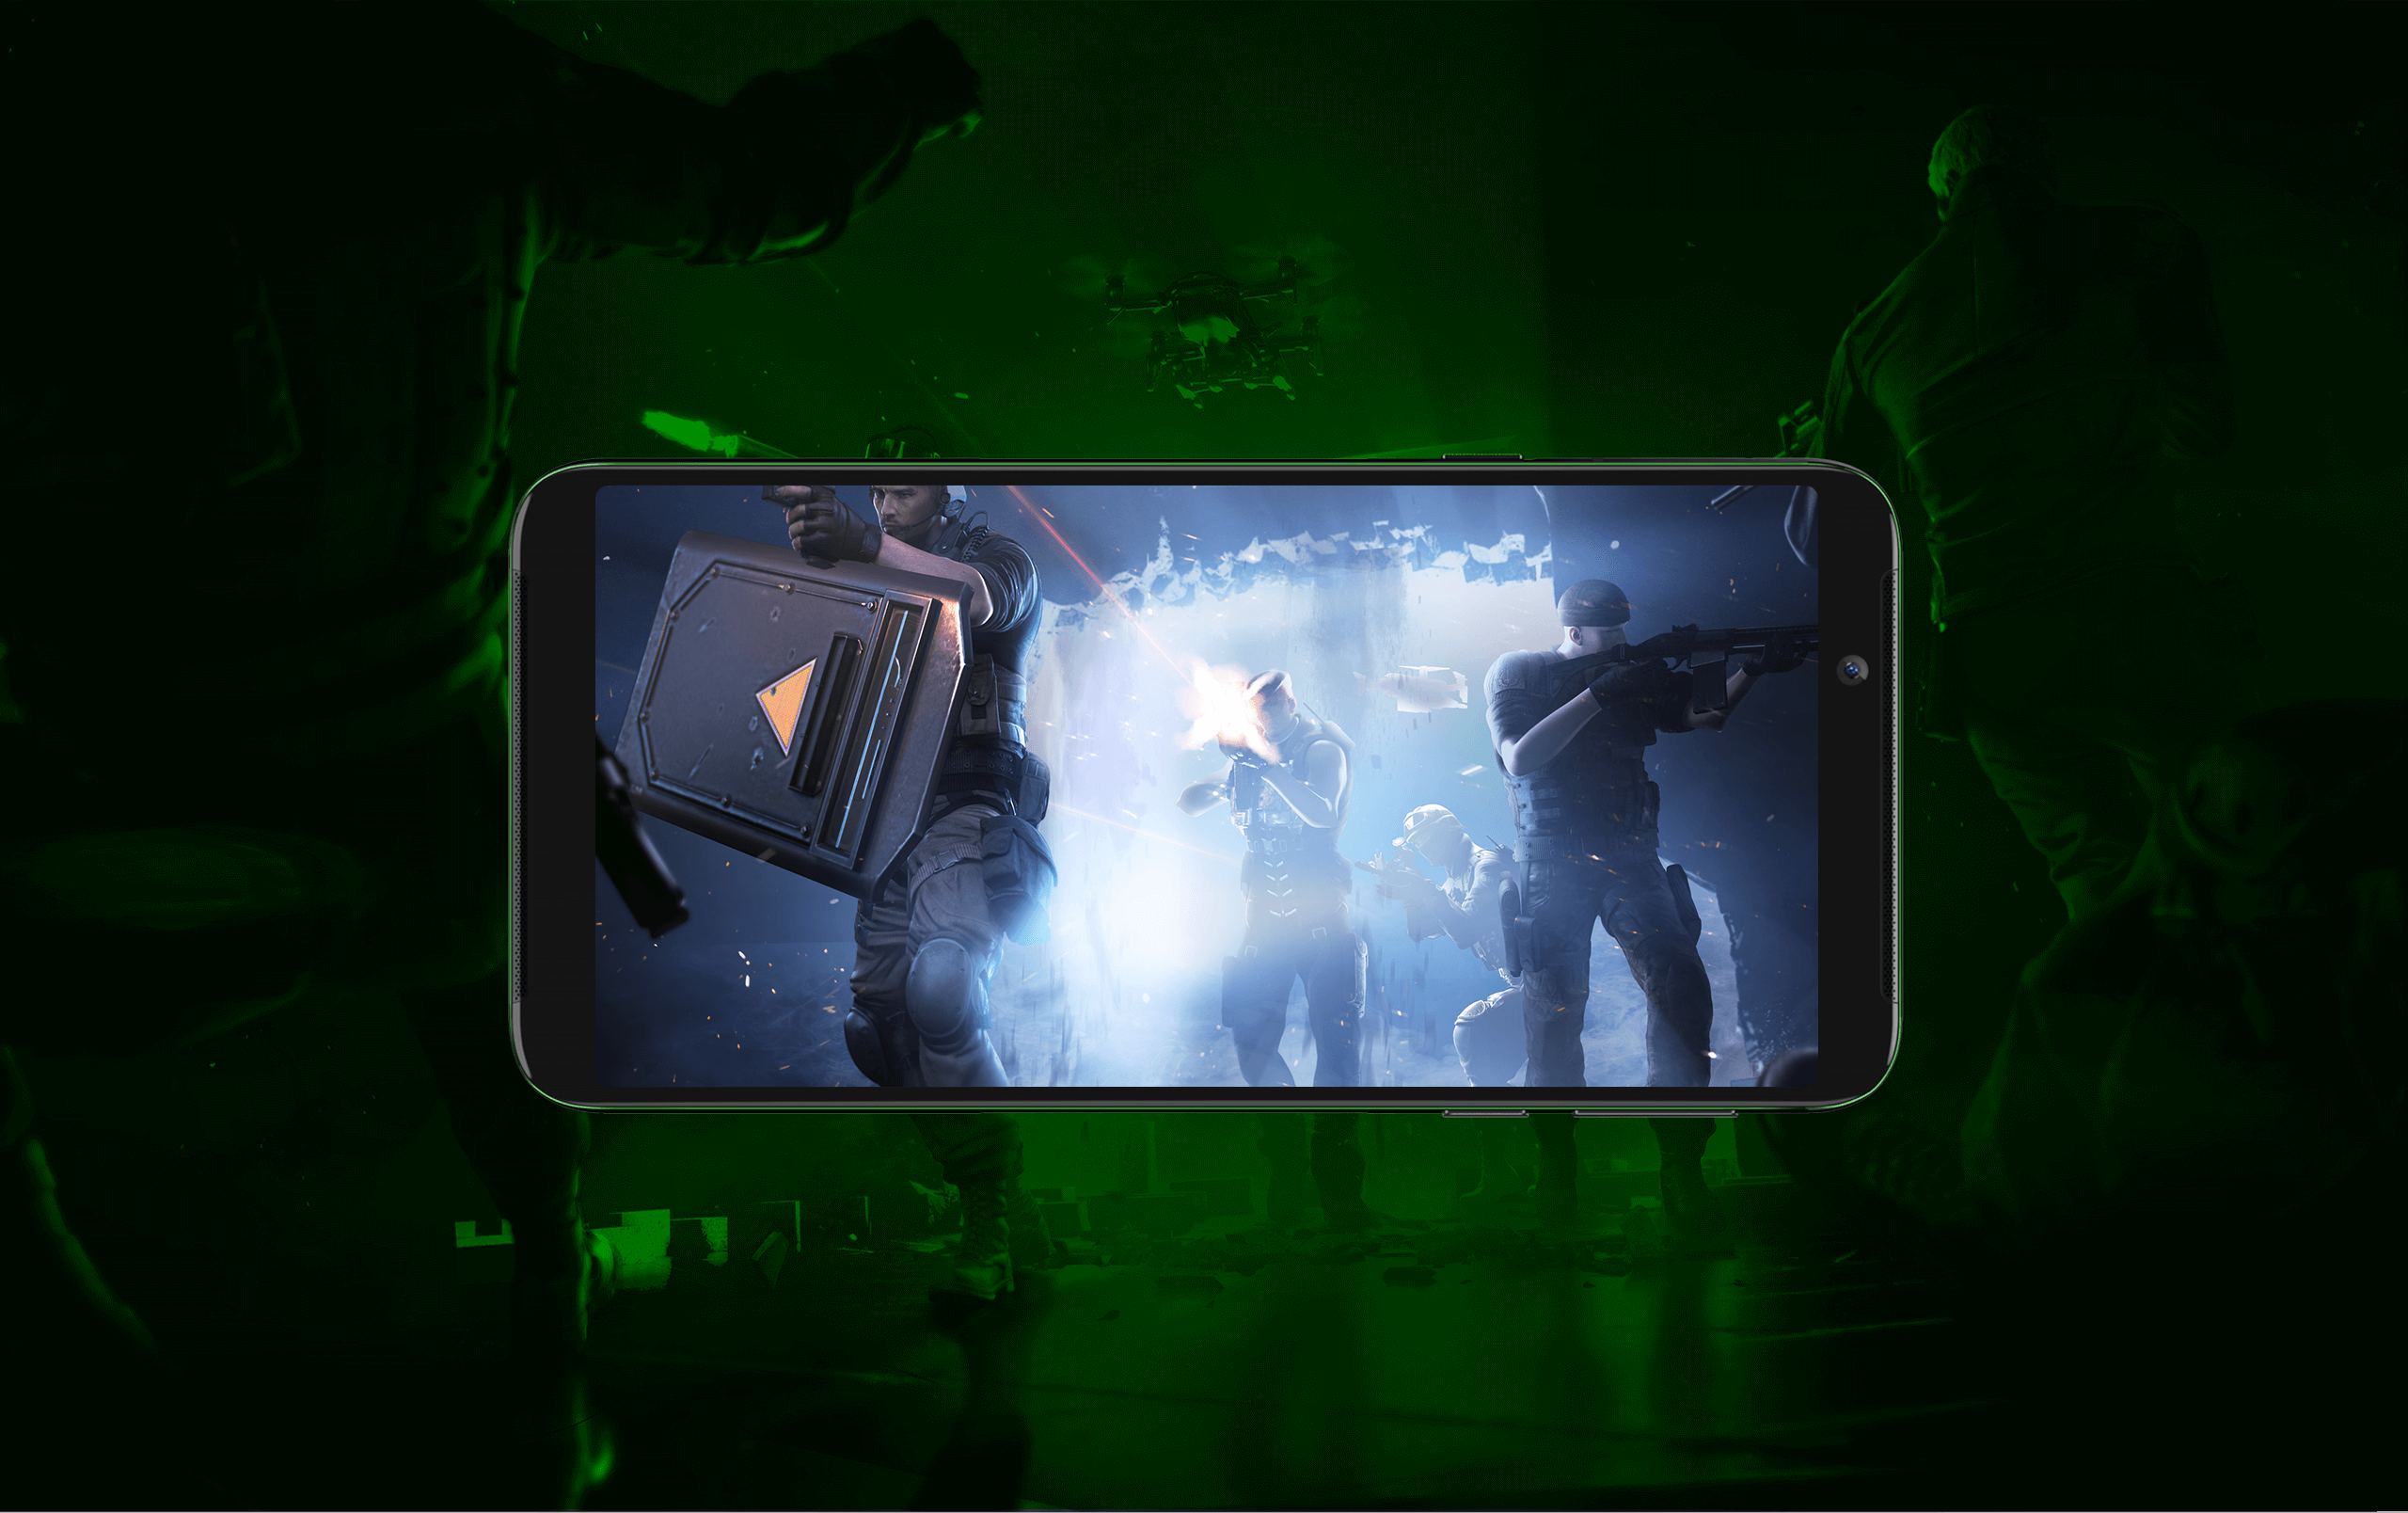 Xiaomi Black Shark Helo launched with up to 10GB RAM & Snapdragon 845 4